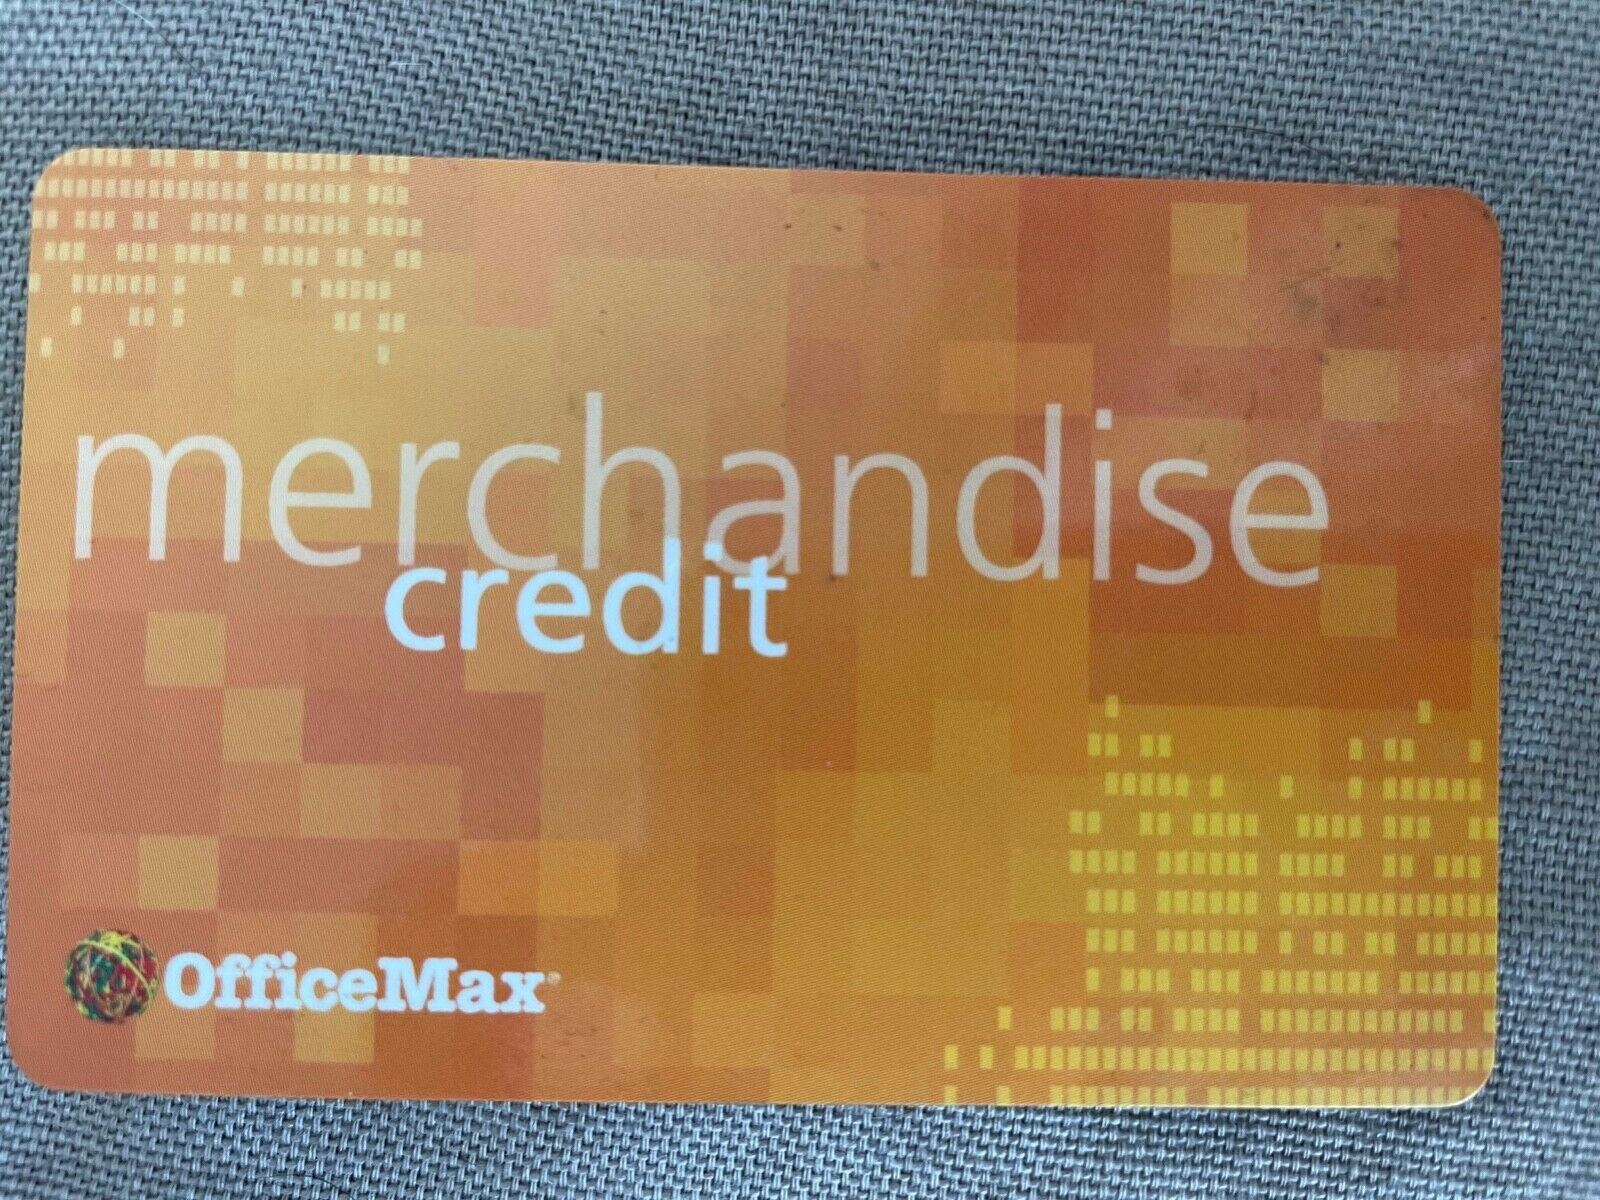 OFFICEMAX Merchandise Credit 51.95 For Your Needs At The Store  - $47.99